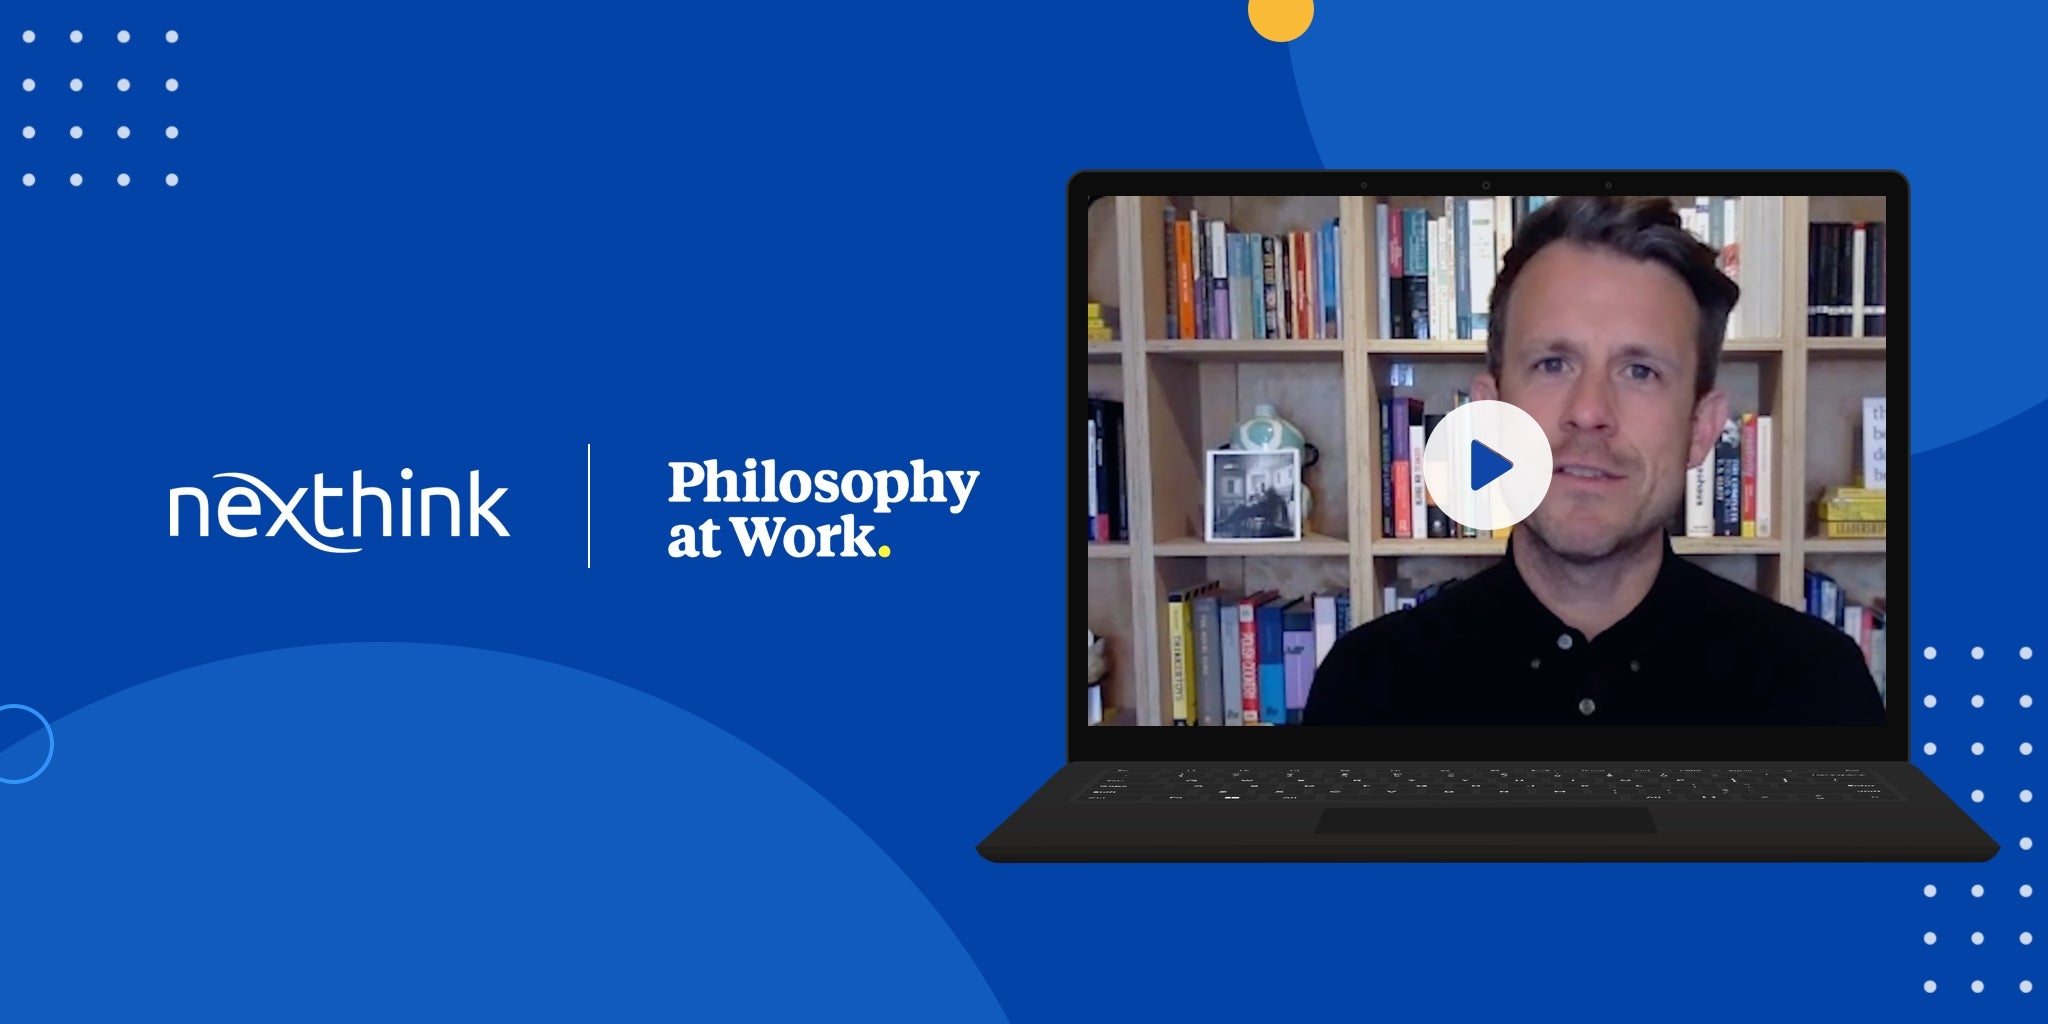 Through the Crisis: Nexthink Customer Stories (Philosophy at Work)